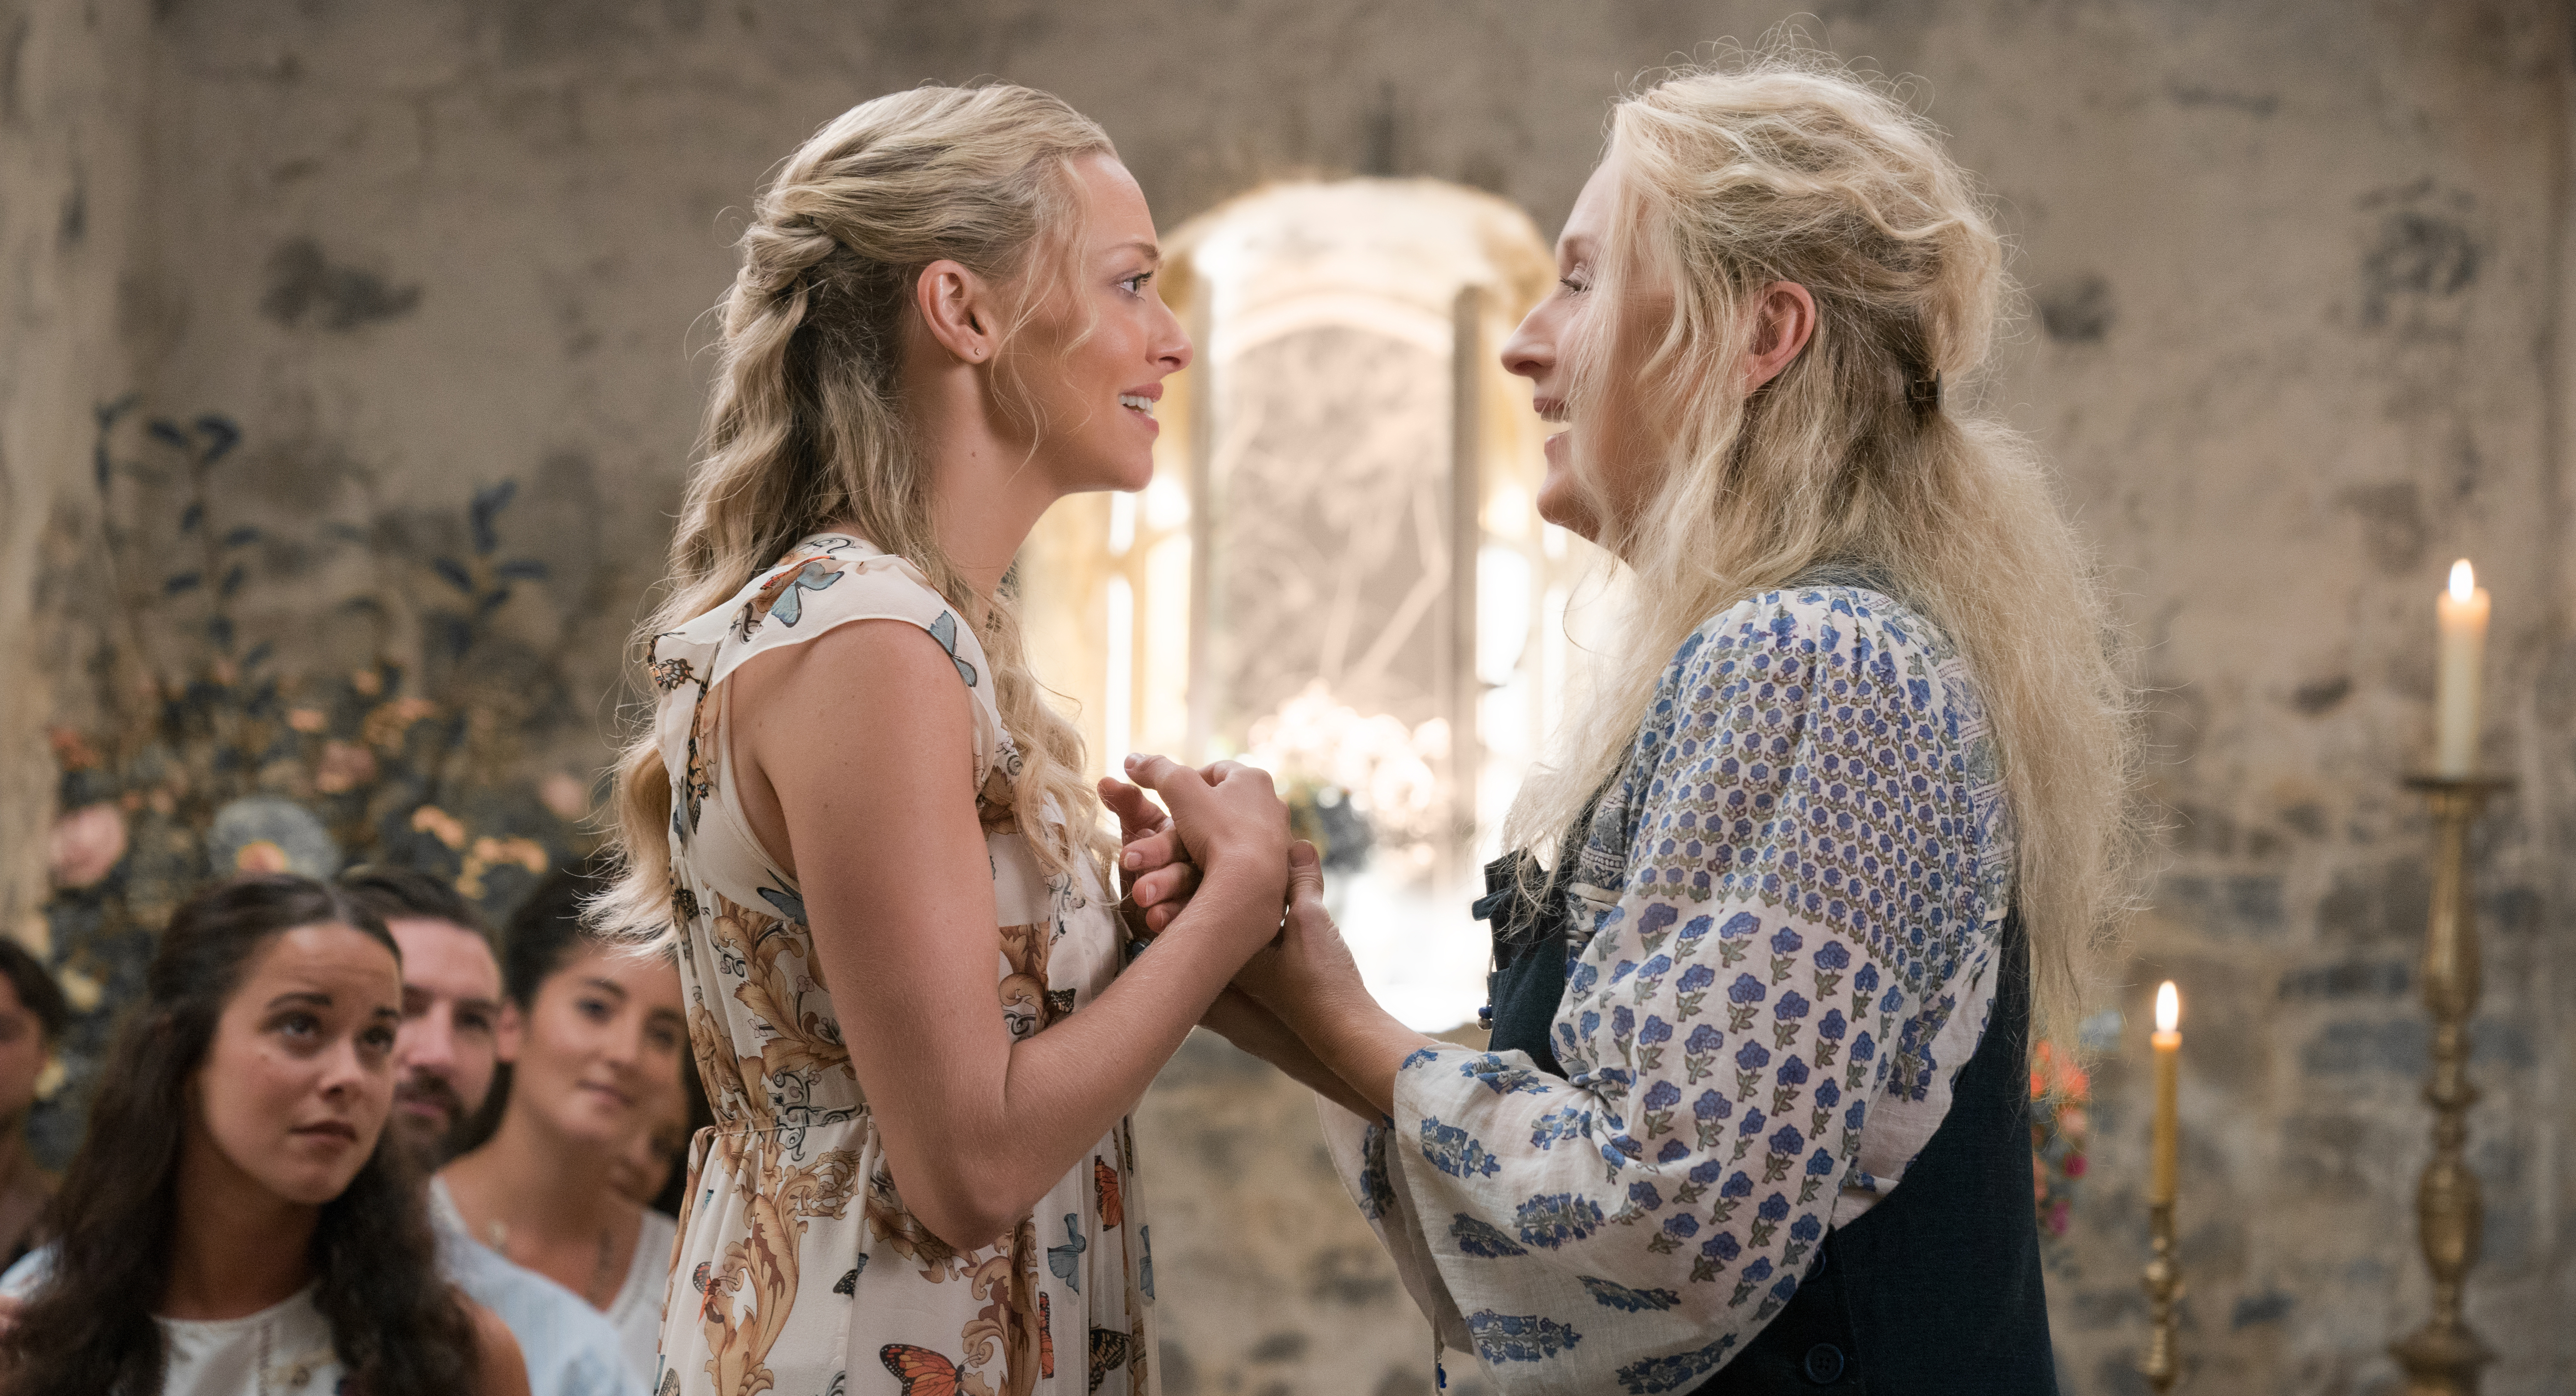 """(L to R) Sophie (AMANDA SEYFRIED) and Donna (MERYL STREEP) in """"Mamma Mia! Here We Go Again."""" Ten years after """"Mamma Mia! The Movie,"""" you are invited to return to the magical Greek island of Kalokairi in an all-new original musical based on the songs of ABBA."""